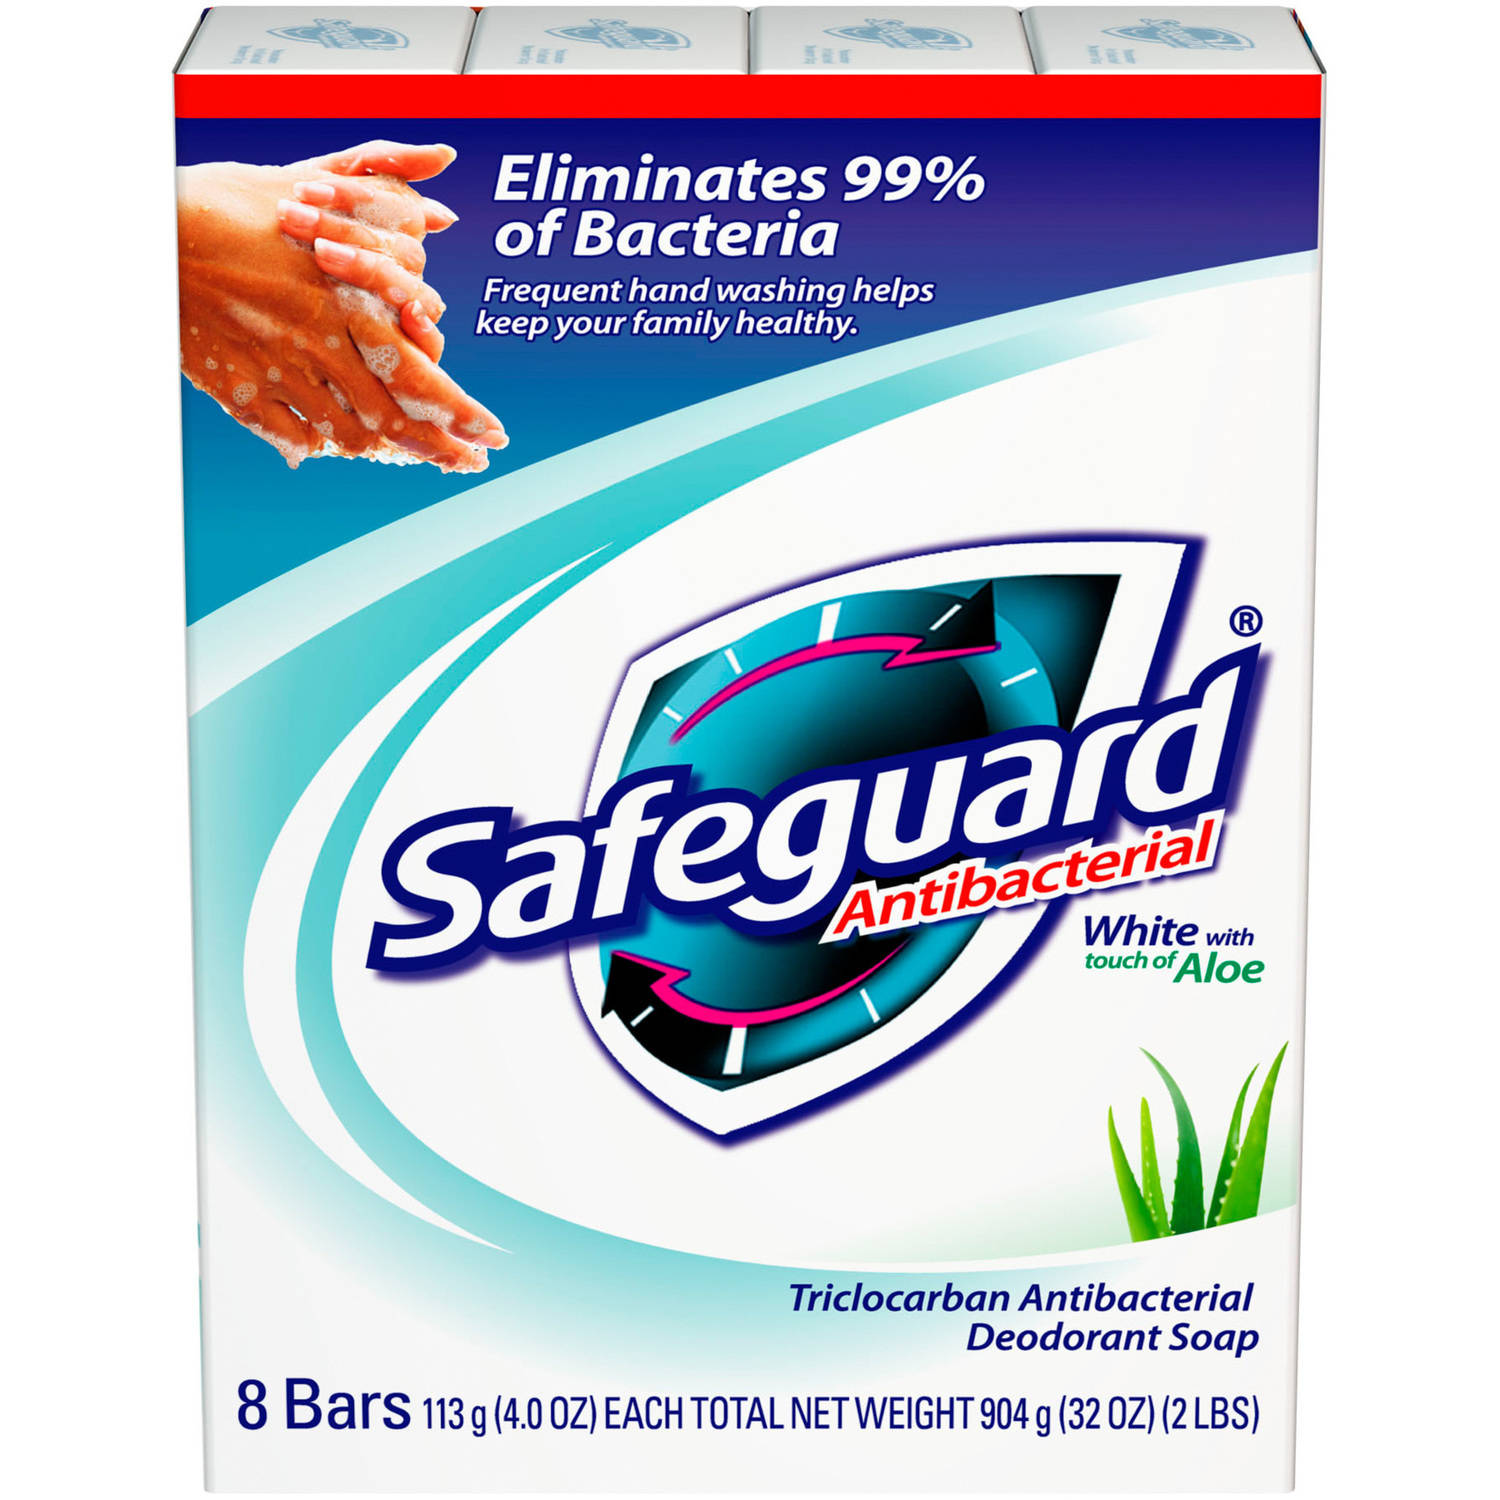 Safeguard Antibacterial White with Aloe Triclosan Antibacterial Deodorant Soap, 4 oz, 8 count